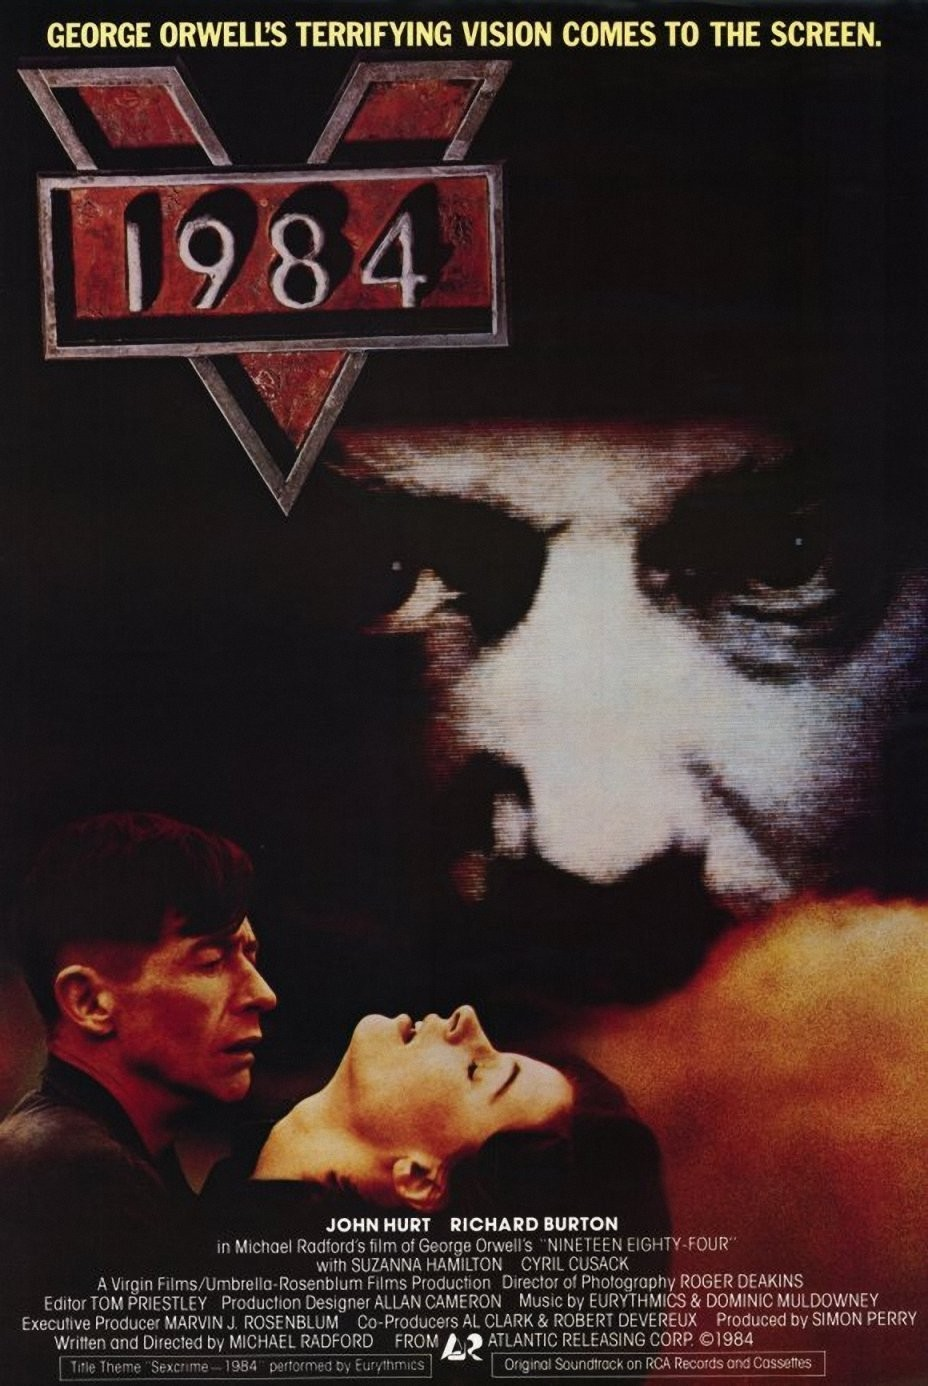 1984 (1984) - Directed by: Michael RadfordStarring: John Hurt, Richard Burton, Suzanna HamiltonRated: RRunning Time: 1 h 53 mTMM Score: 4 stars out of 5STRENGTHS: Themes, Story, Cinematography, DirectingWEAKNESSES: Pacing, Some Acting